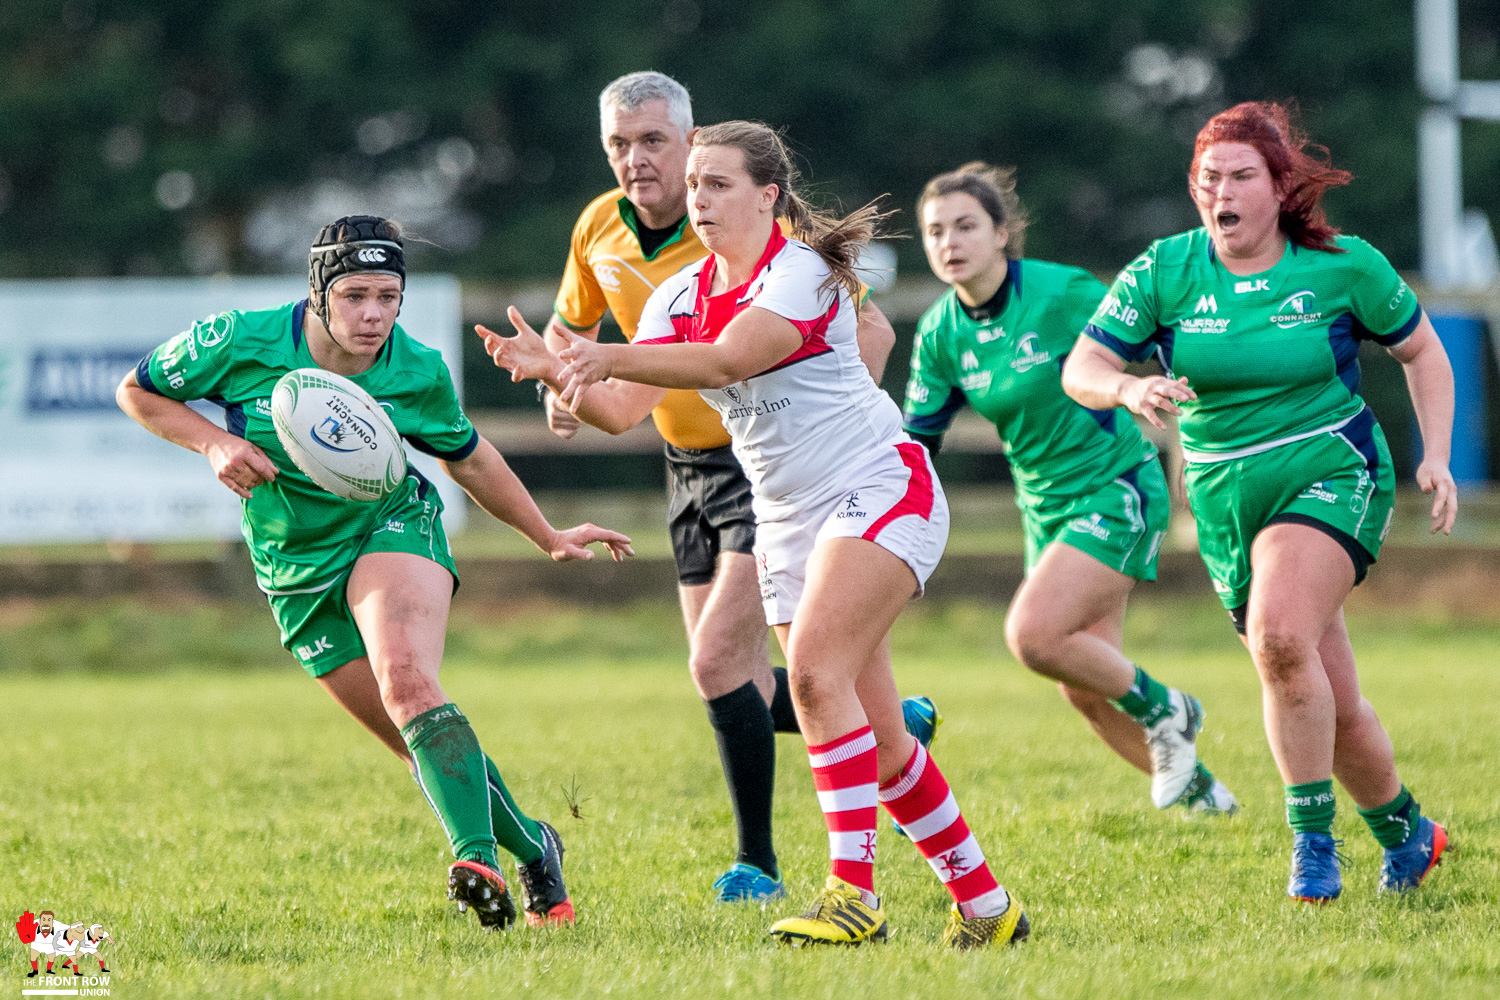 Jemma Jackson, Ulster Womens Rugby